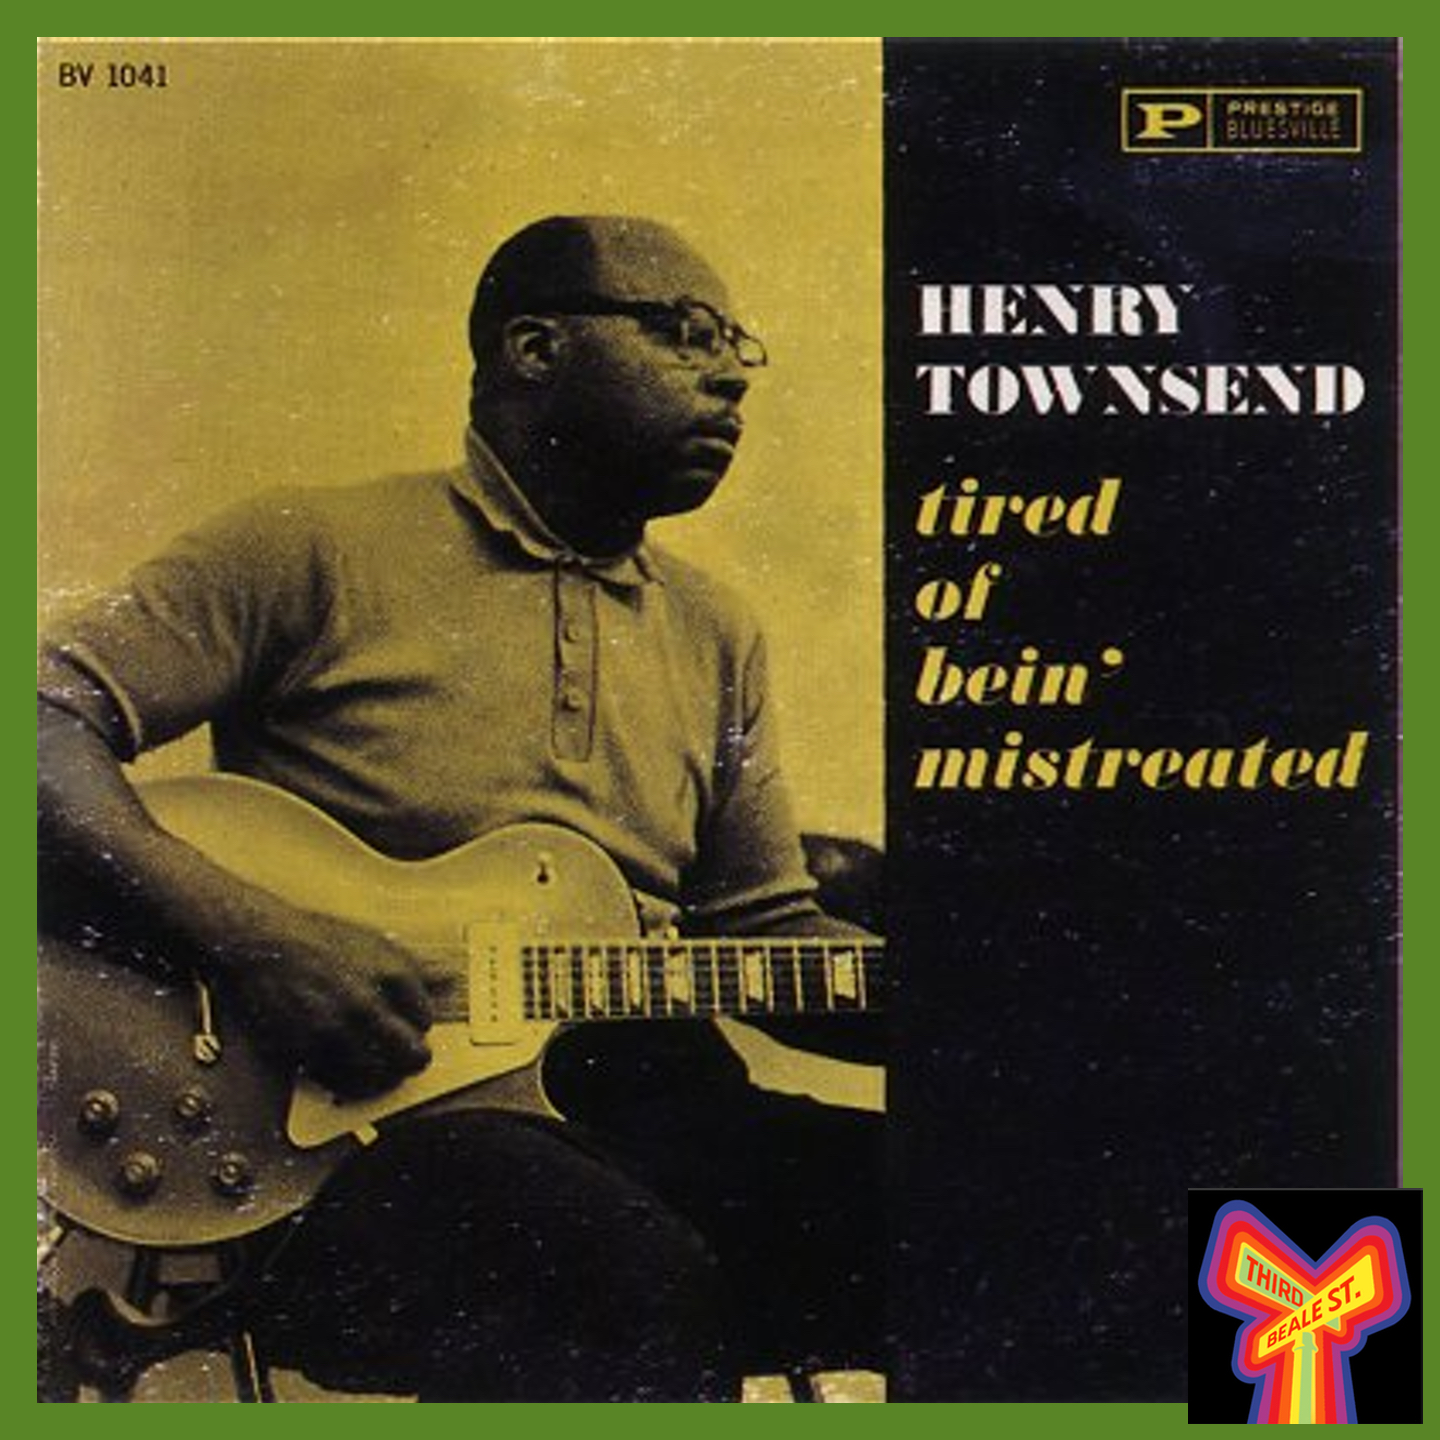 Caption: Another classic from Bluesville: Henry Townsend's LP for the label is a super-rarity today.